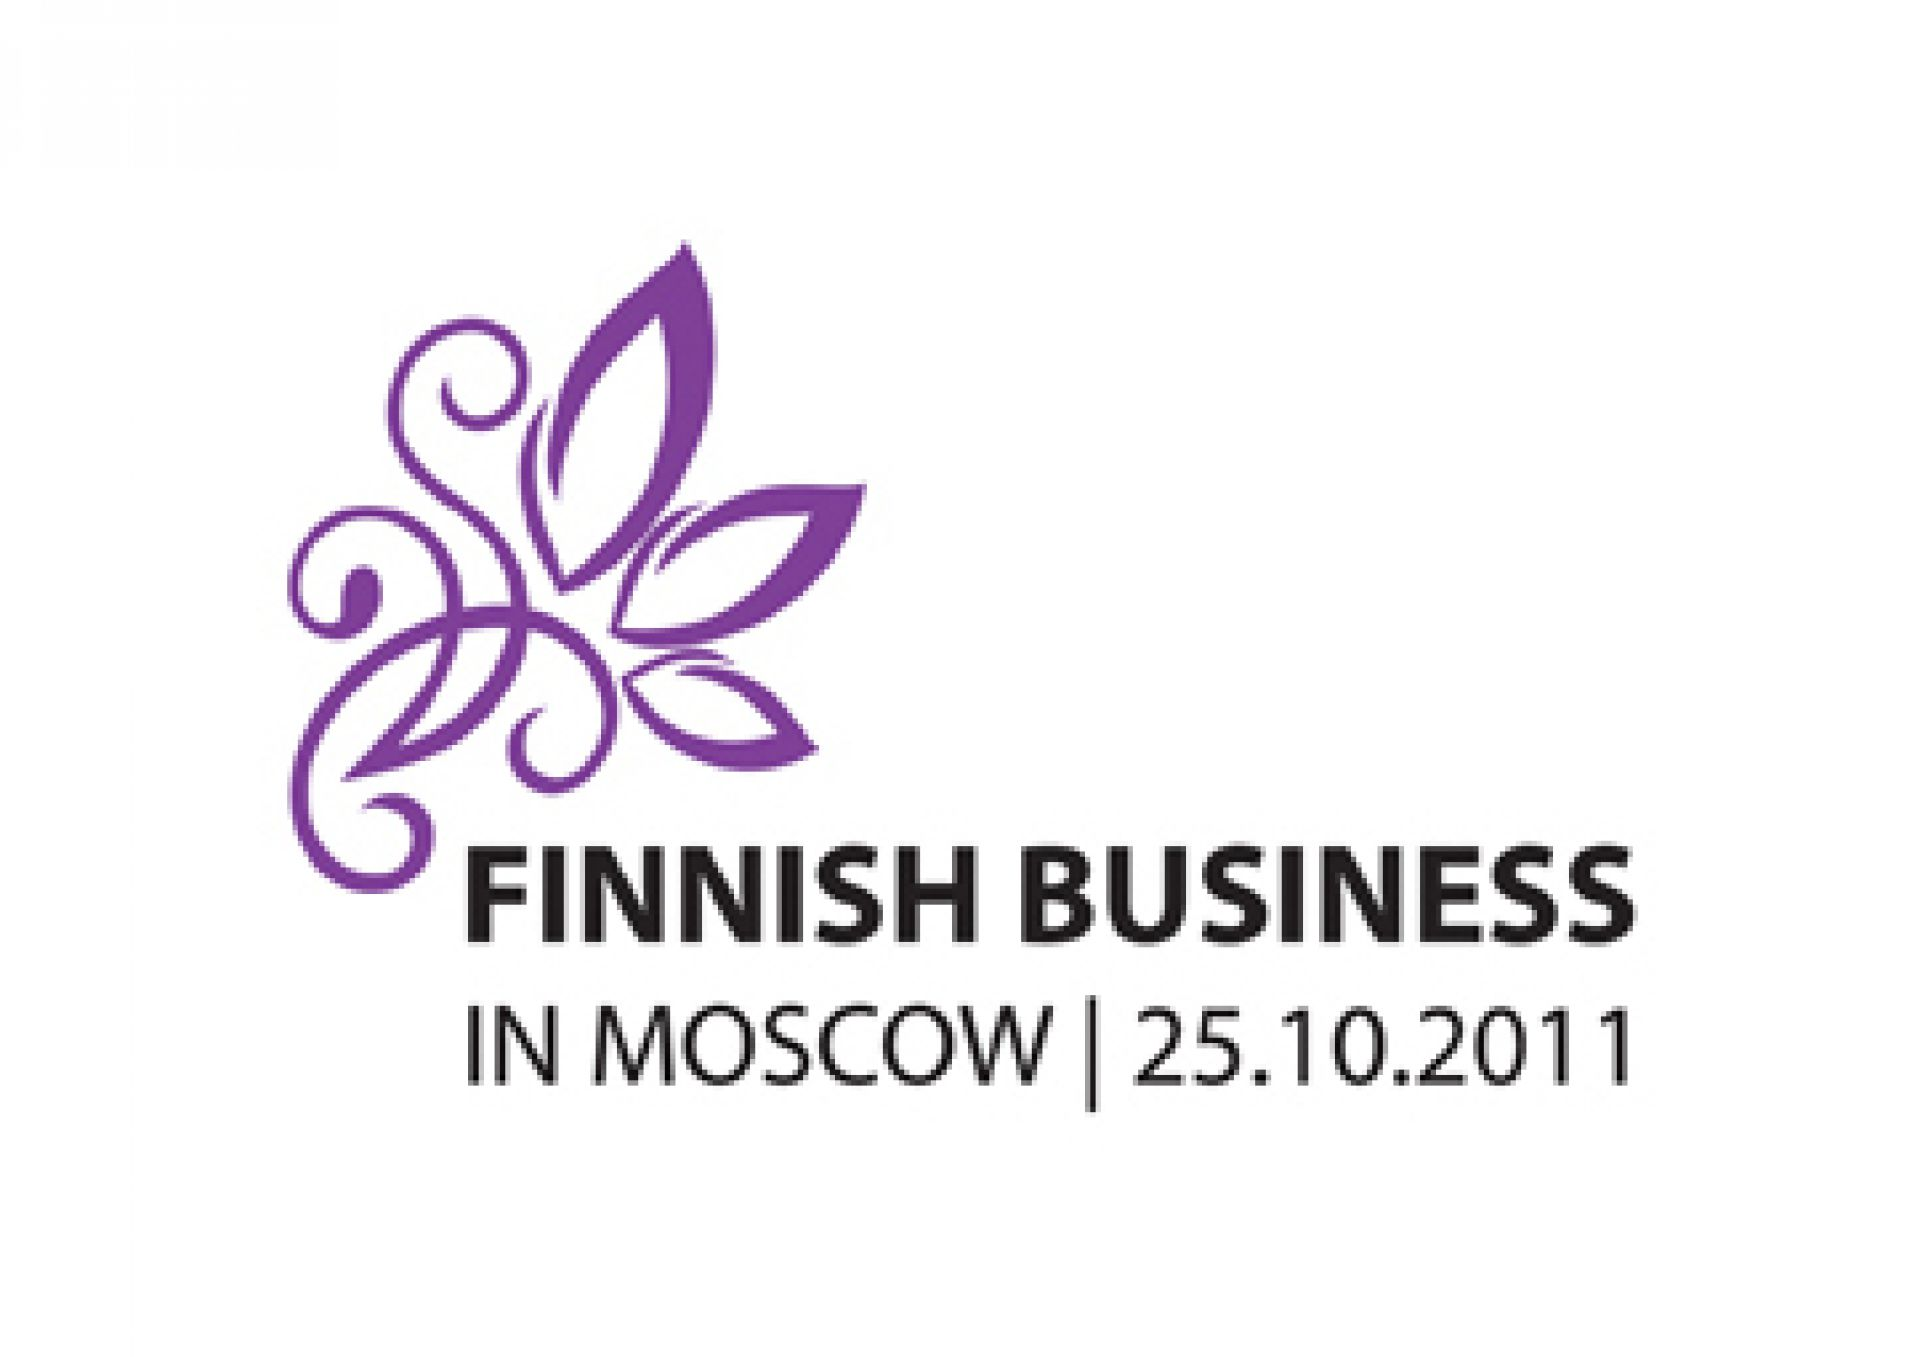 HONKA на Finnish Business 2011